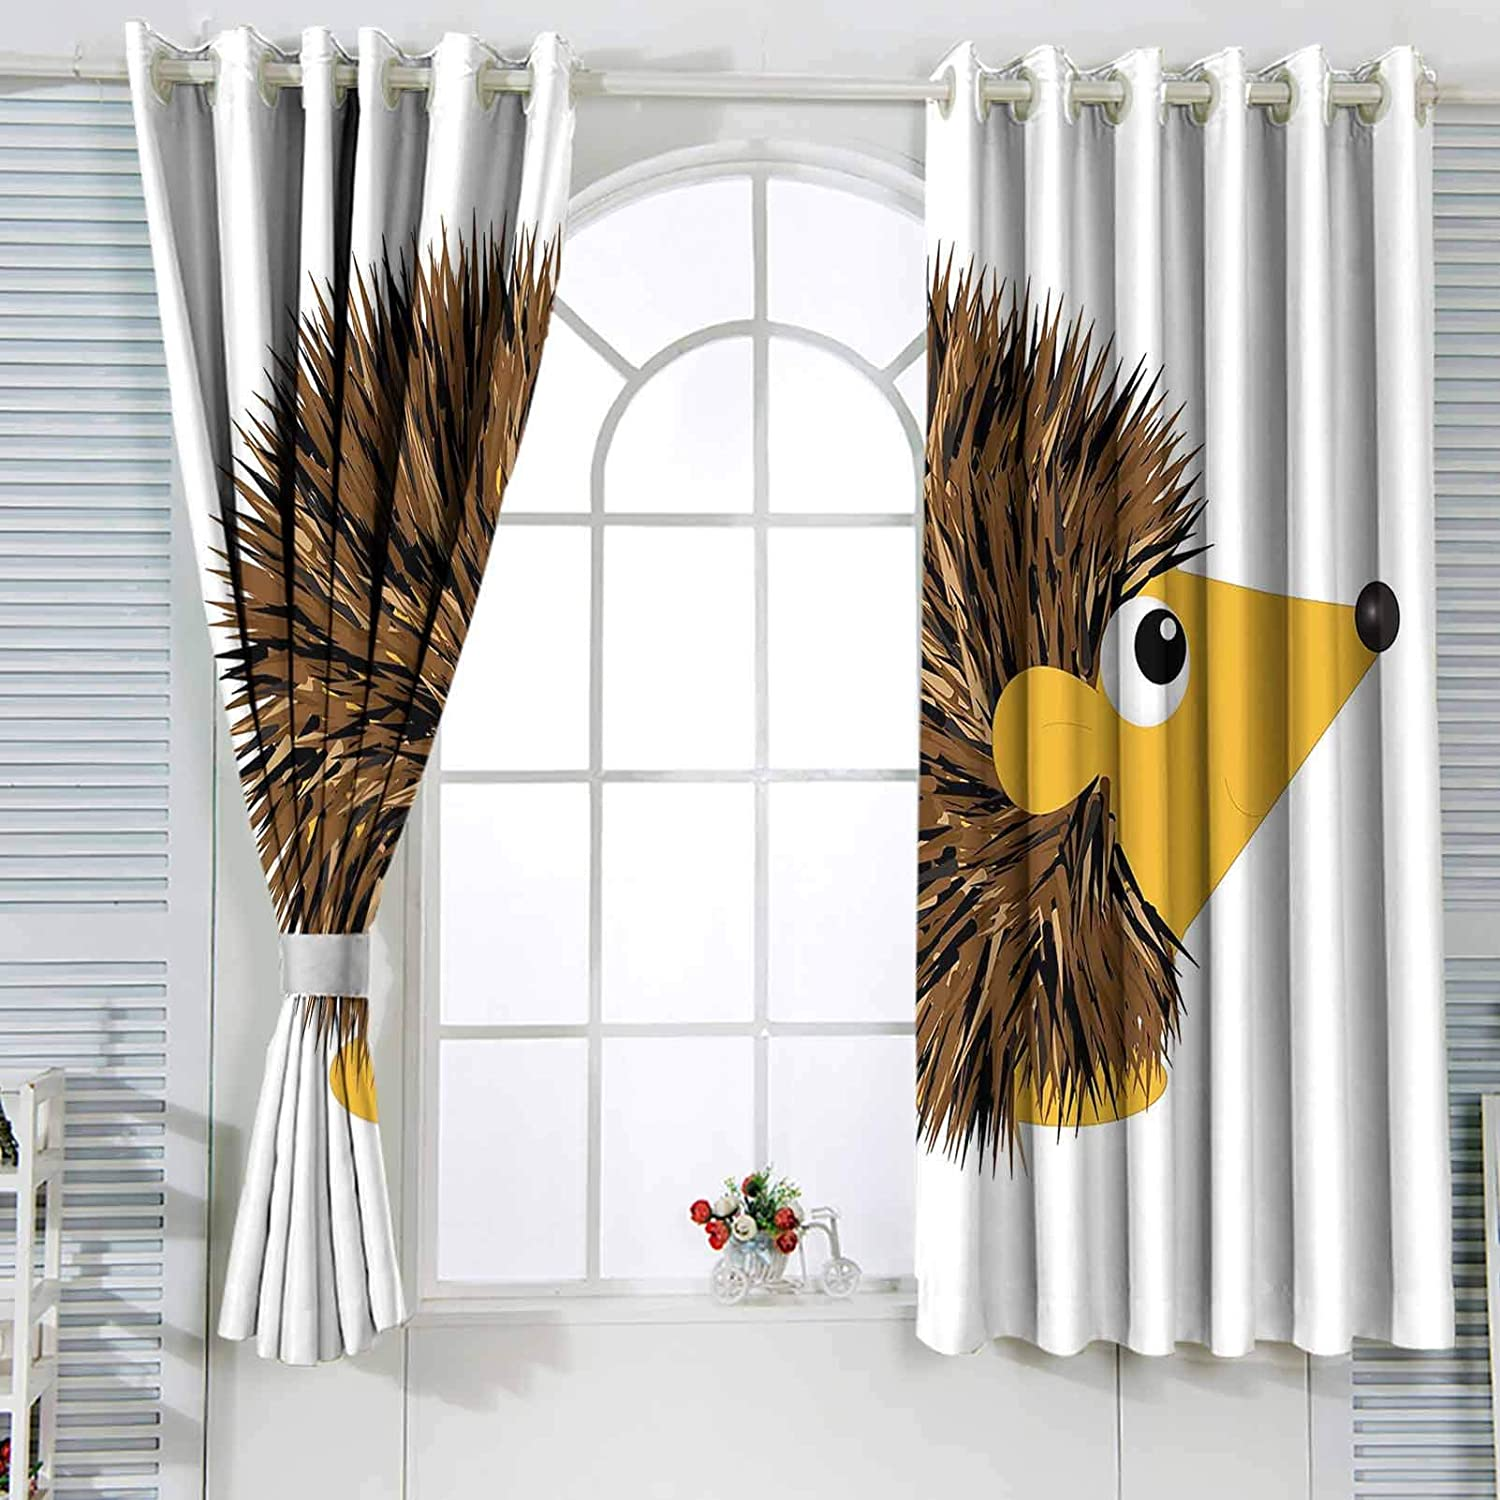 Hedgehog Thermal Under blast sales Insulated Milwaukee Mall Curtains Cartoon with Happy Animal a